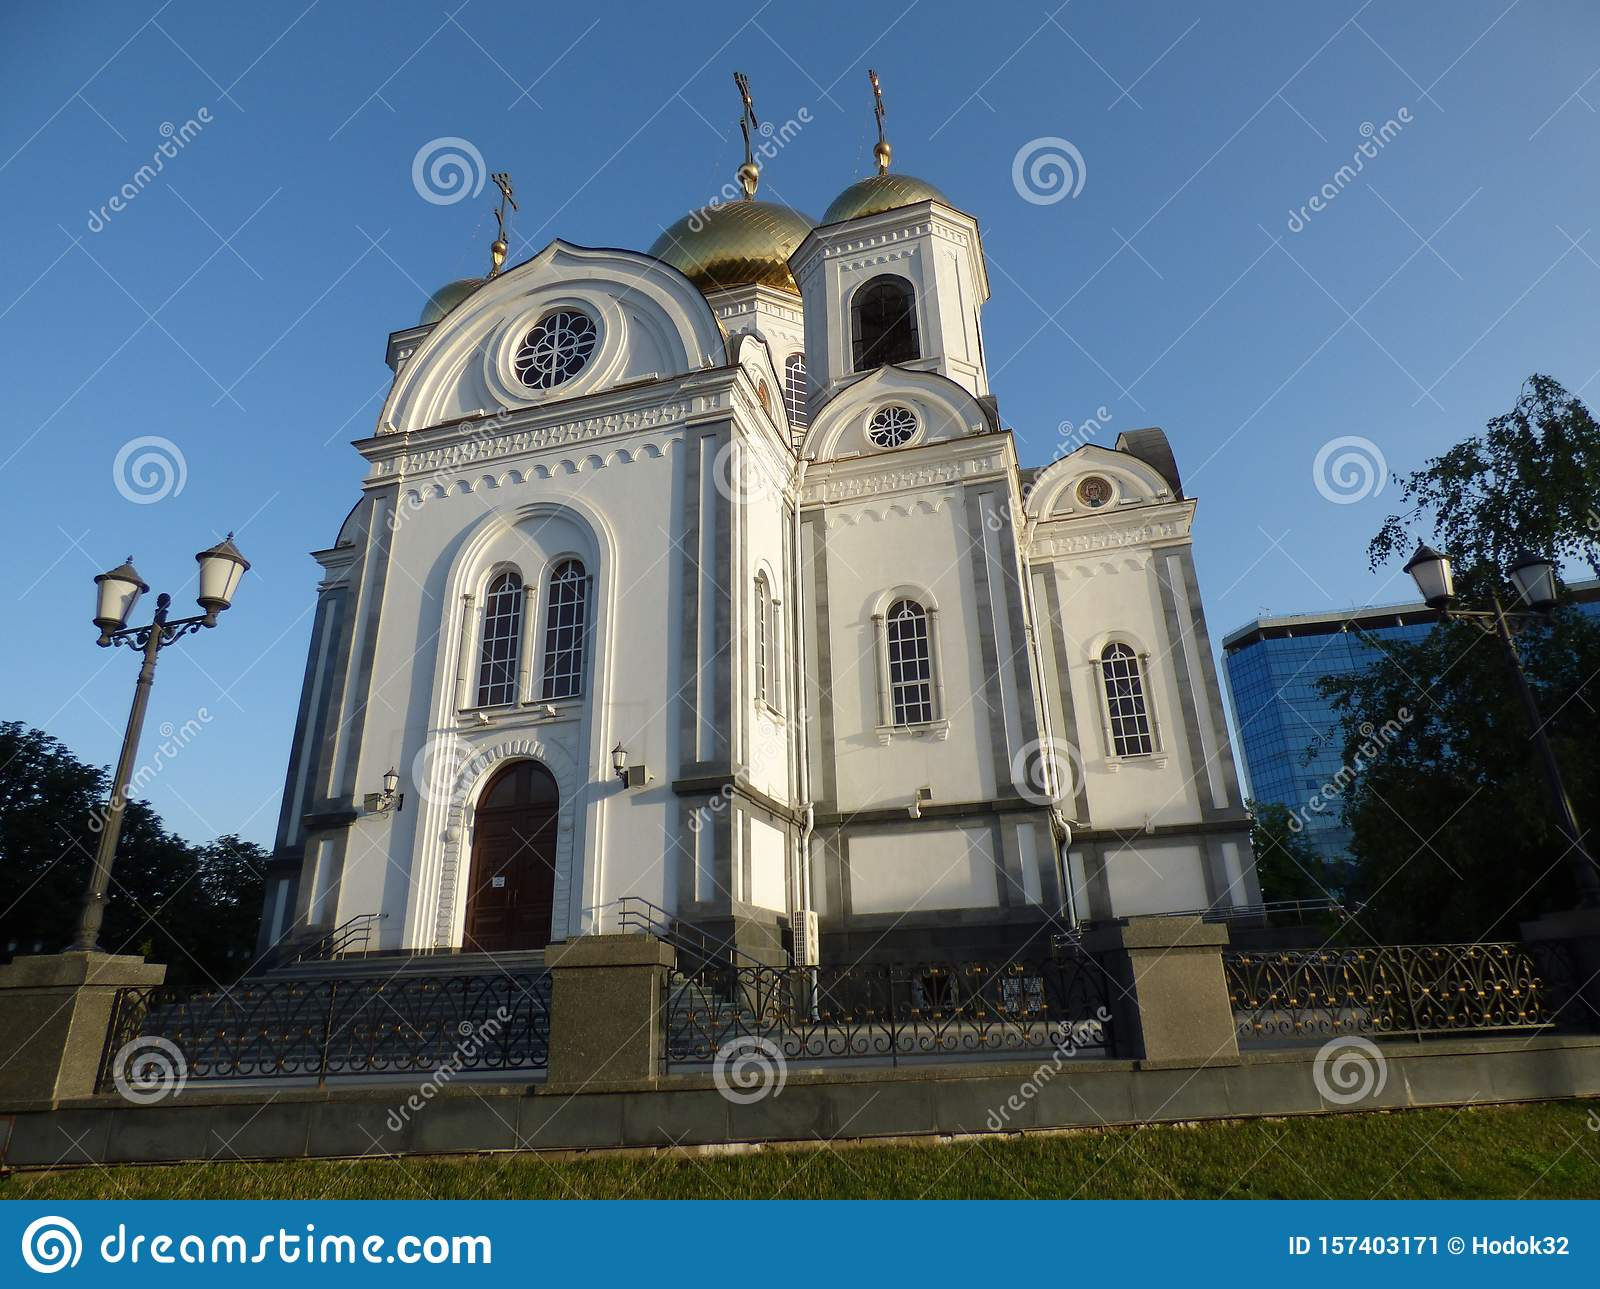 Alexander Nevsky Church Krasnodar Krasnodar Krai Stock Image Image Of People Looking 157403171